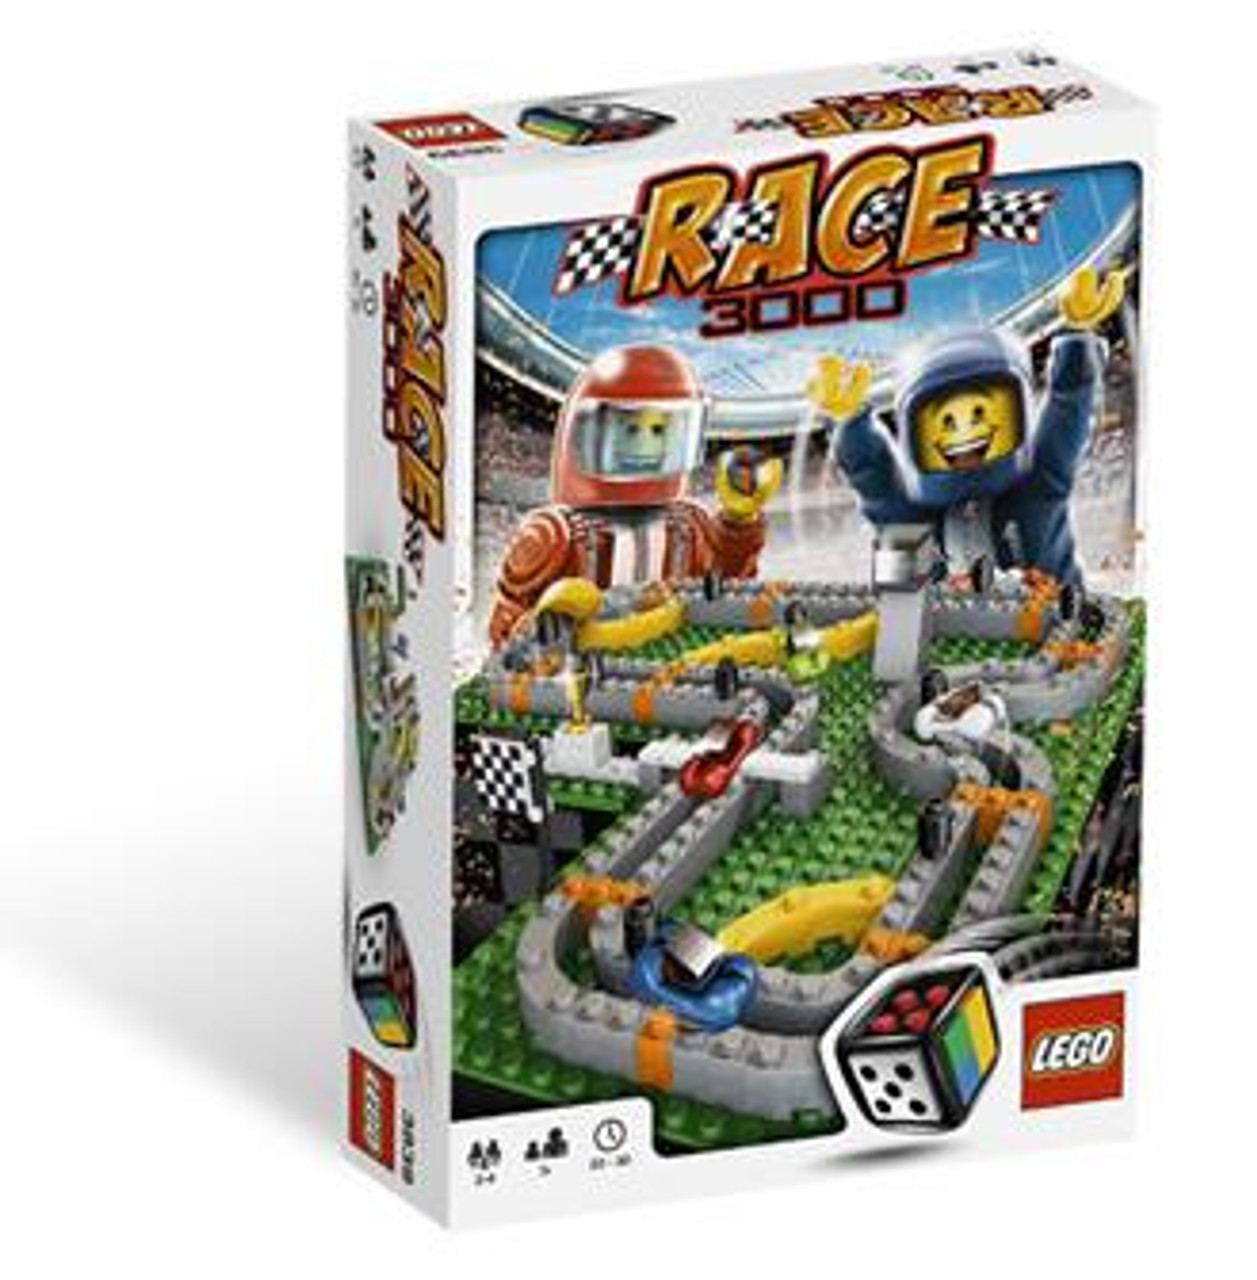 LEGO Games Race 3000 Board Game #3839